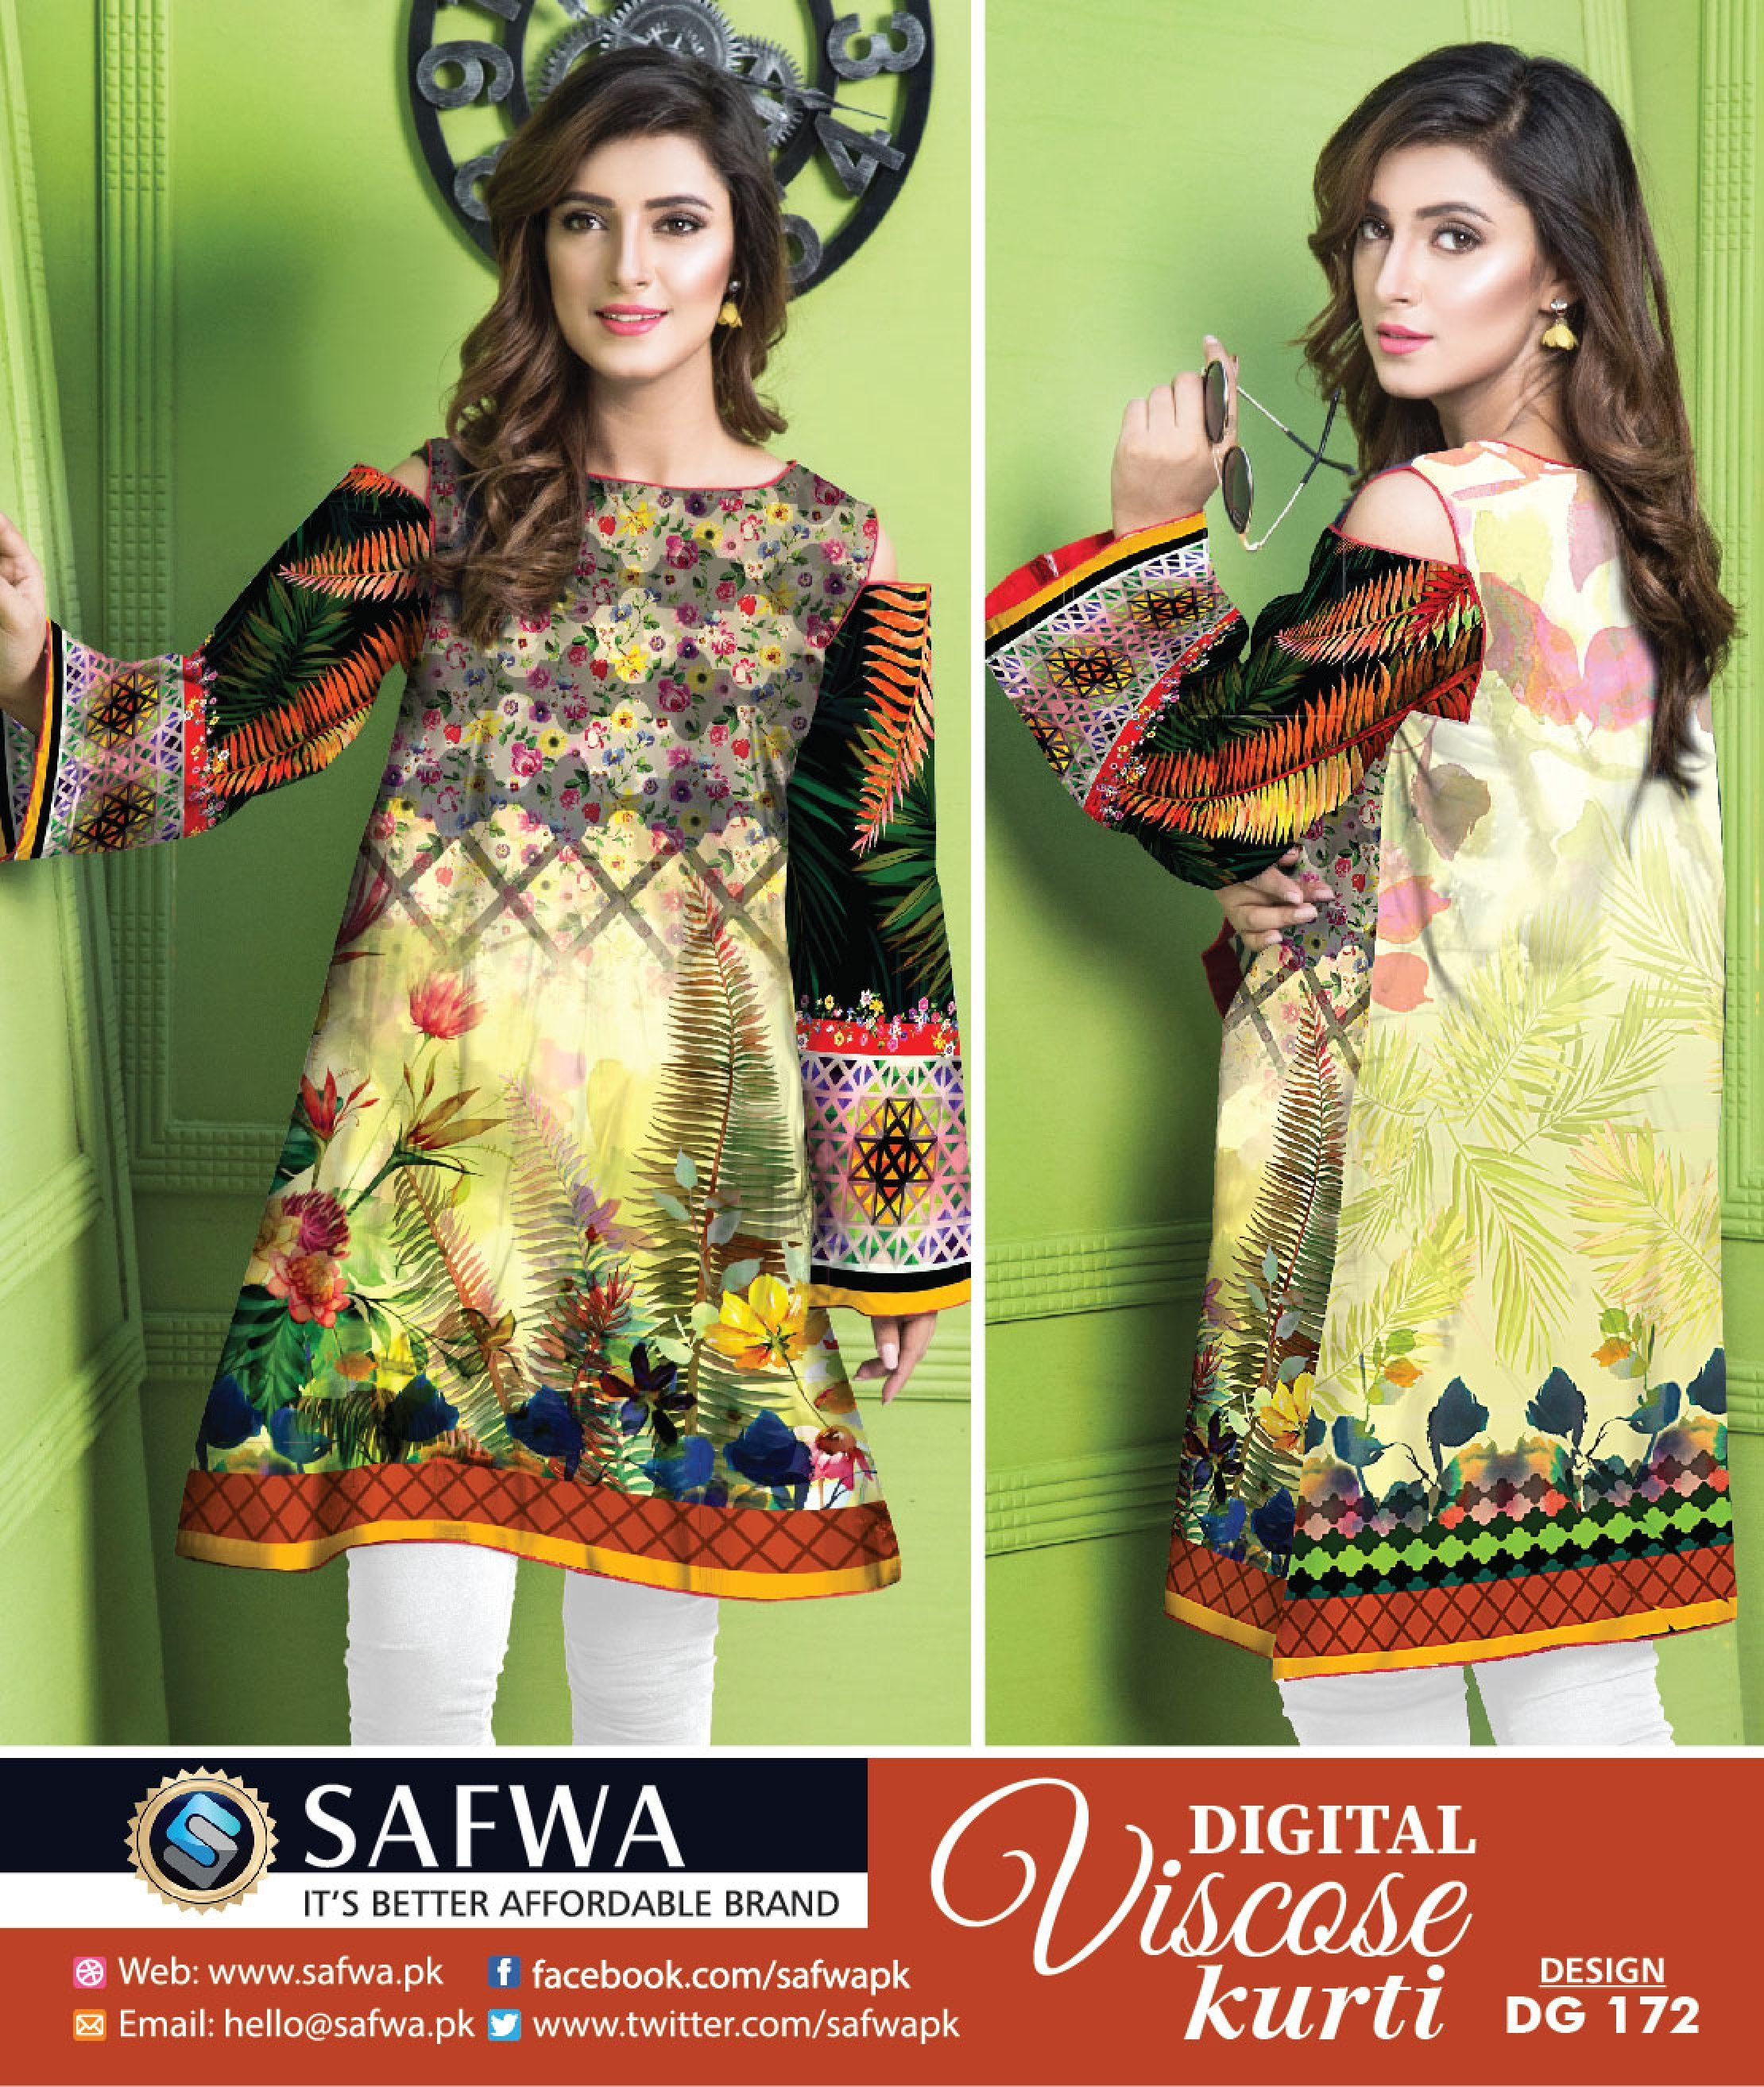 f805bdaaa9 Safwa Brand - Free Delivery! - Cash on Delivery - 30 Days Returns - DG172